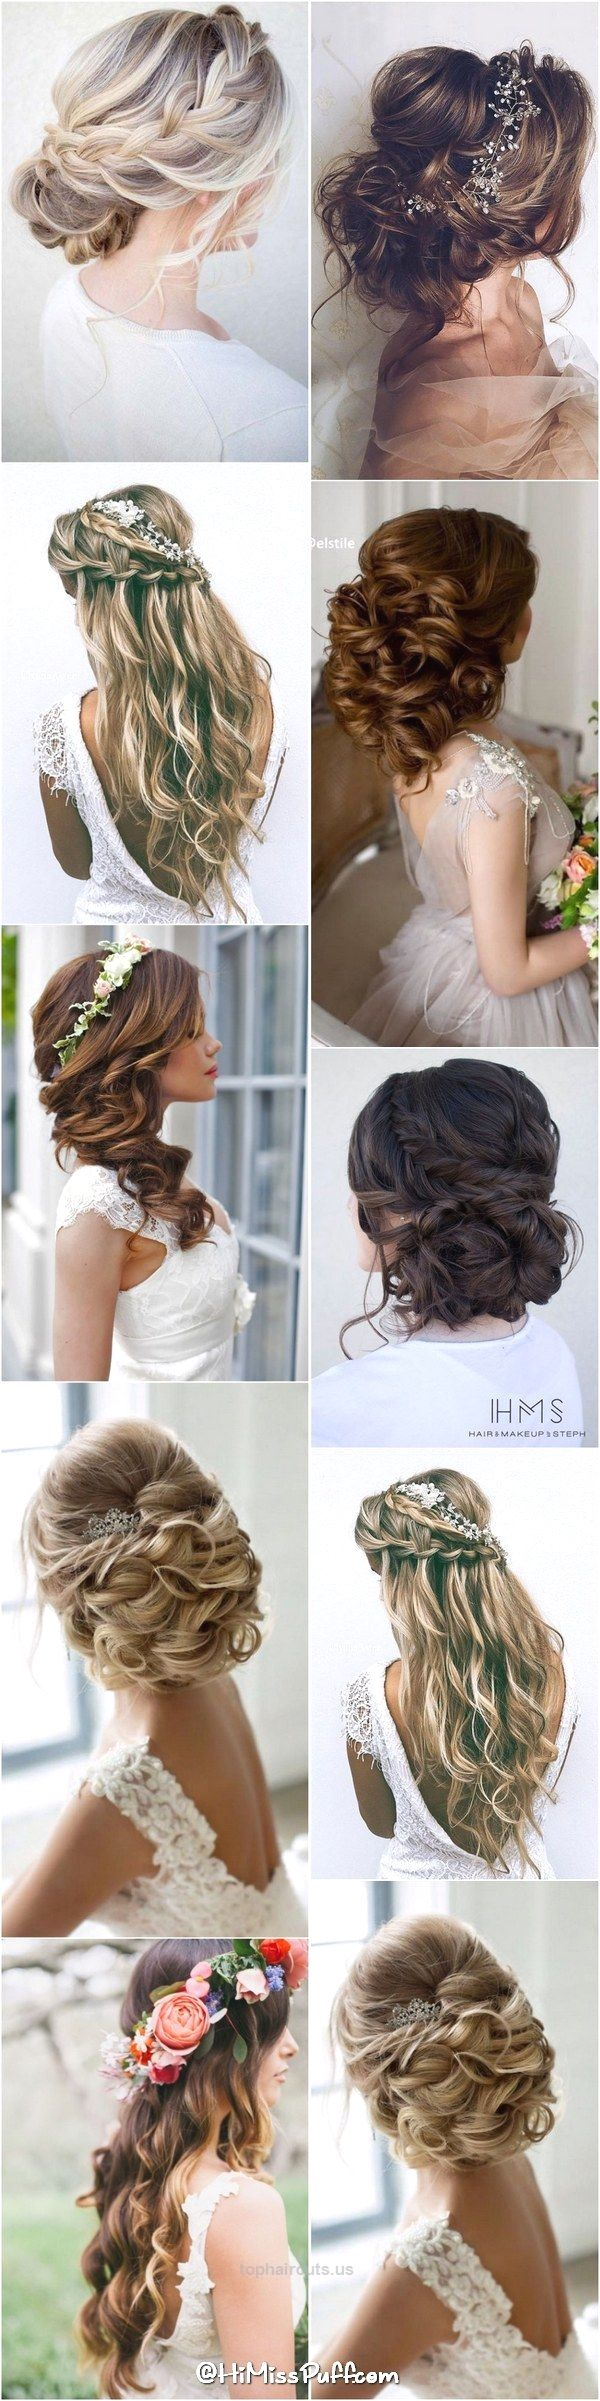 200 Bridal Wedding Hairstyles for Long Hair That Will Inspire / www.himisspuff.c… 200 Bridal Wedding Hairstyles for Long Hair That Will Inspire / www.himisspuff.co…  http://www.tophaircuts.us/2017/05/08/200-bridal-wedding-hairstyles-for-long-hair-that-will-inspire-www-himisspuff-c/